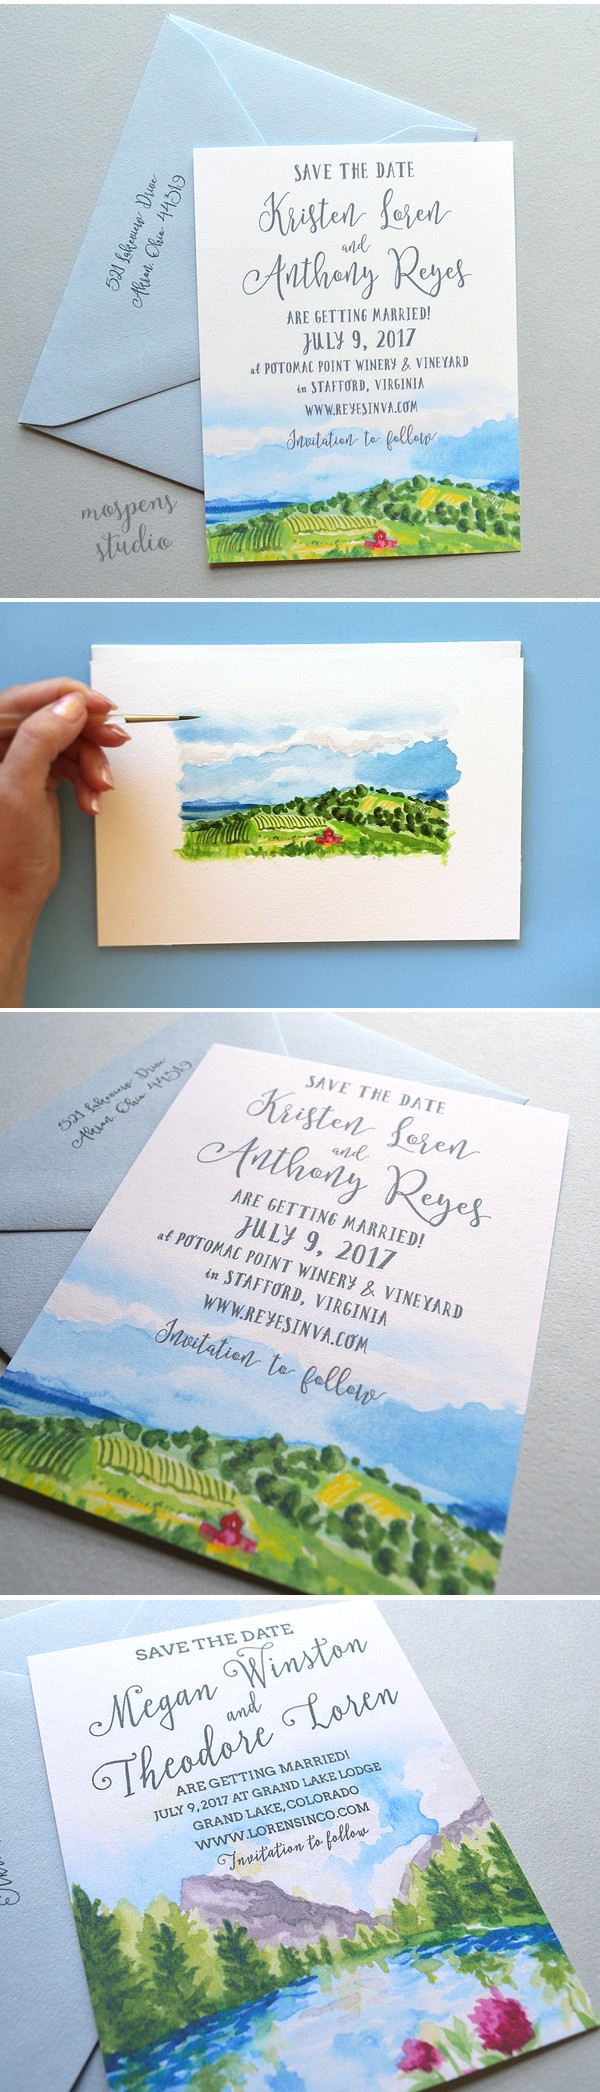 Send the scene! Landscape Save The Date Cards complete with 100% original hand painted watercolor art by Michelle Mospens. Perfect for a rustic and vineyard wedding!! - www.mospensstudio.com